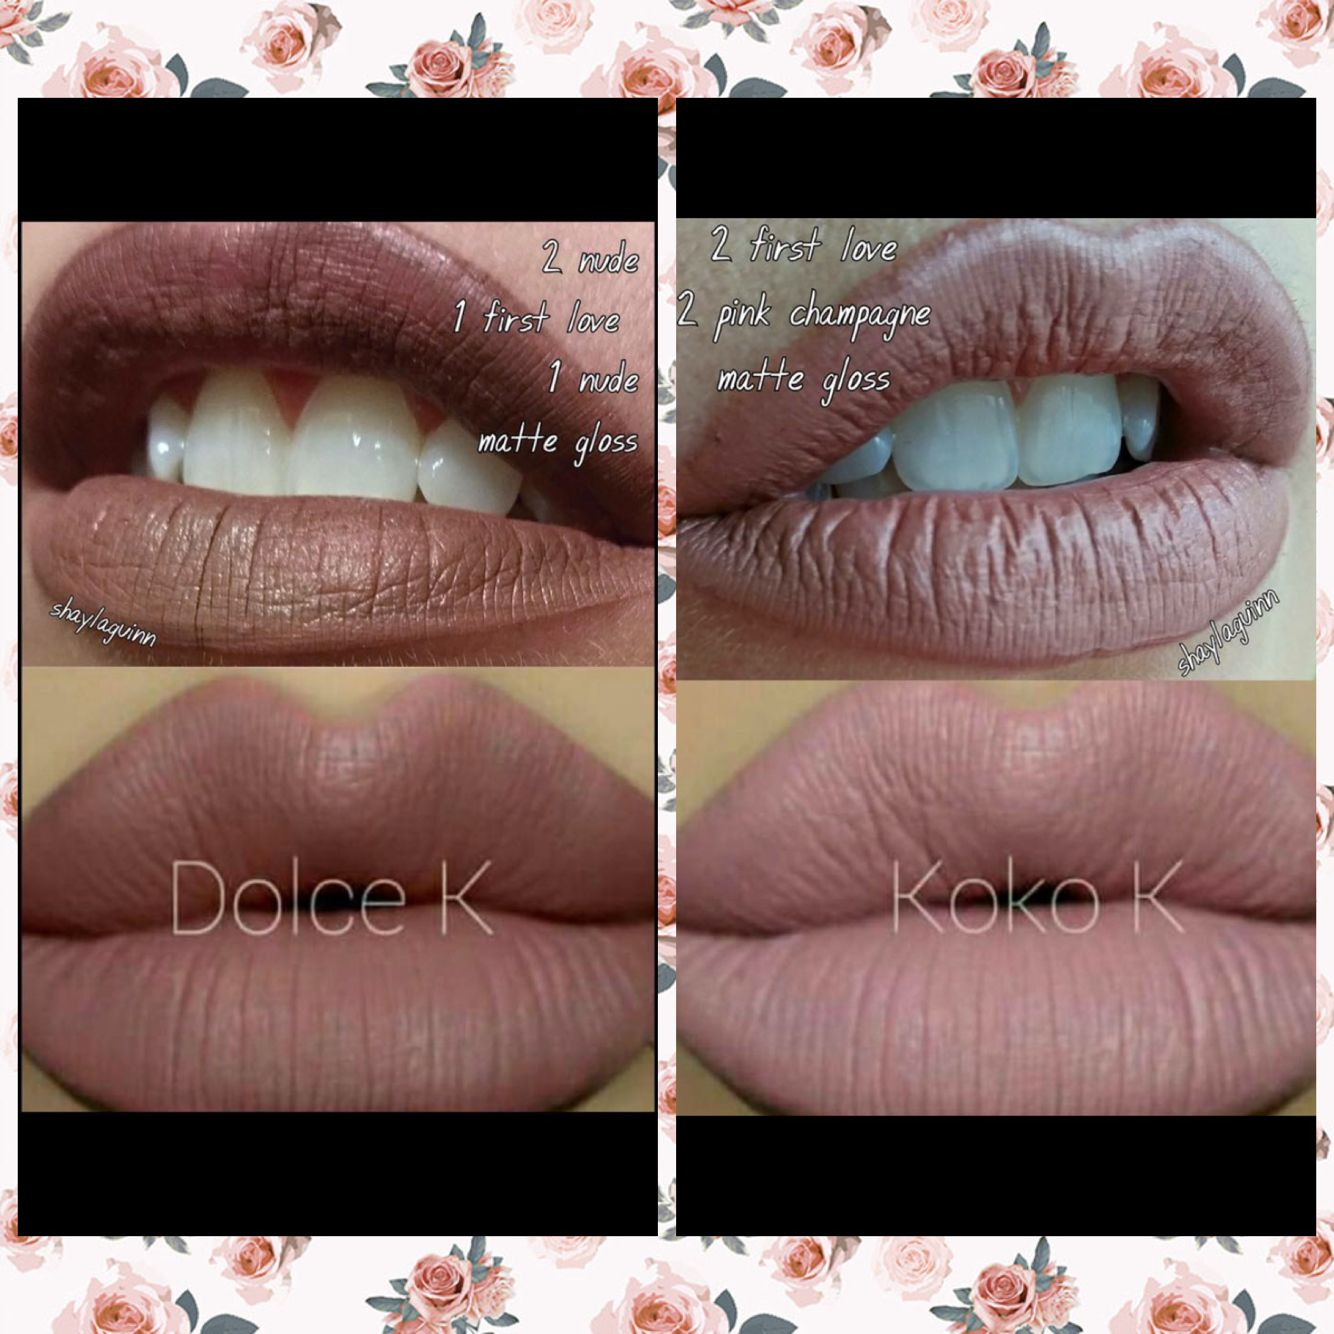 LipSense V. Kylie lip kit! LipSense lasts 18 hours, is waterproof, smudge proof and kiss proof!!! Totally amazing!!! ❤️